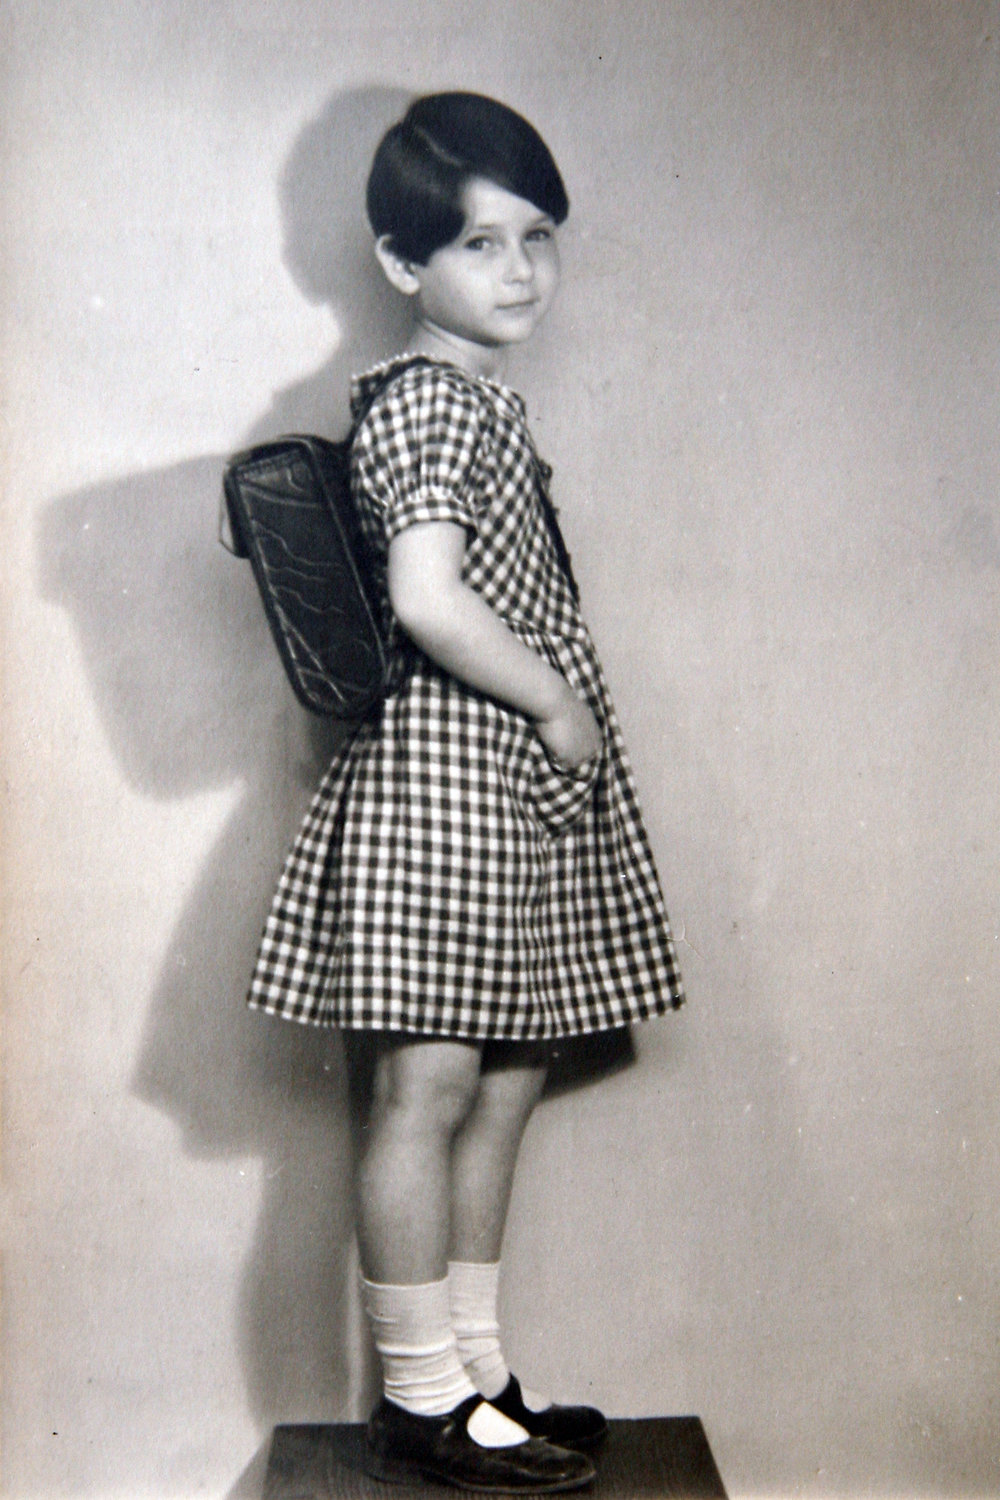 Irene in first grade in Berlin, 1936.